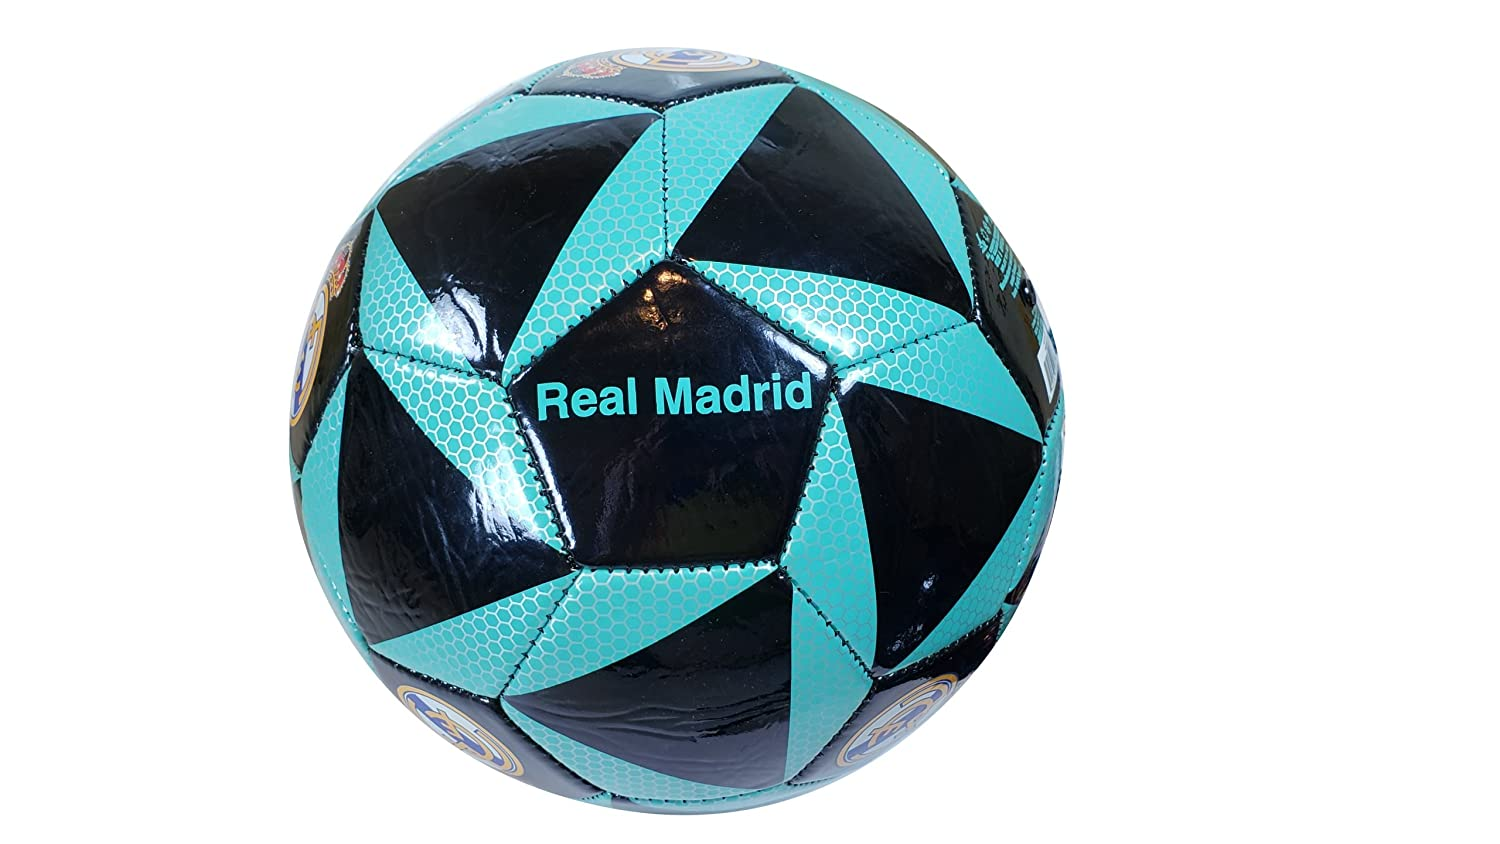 Real Madrid Authentic - Balón de Fútbol con Licencia Oficial ...